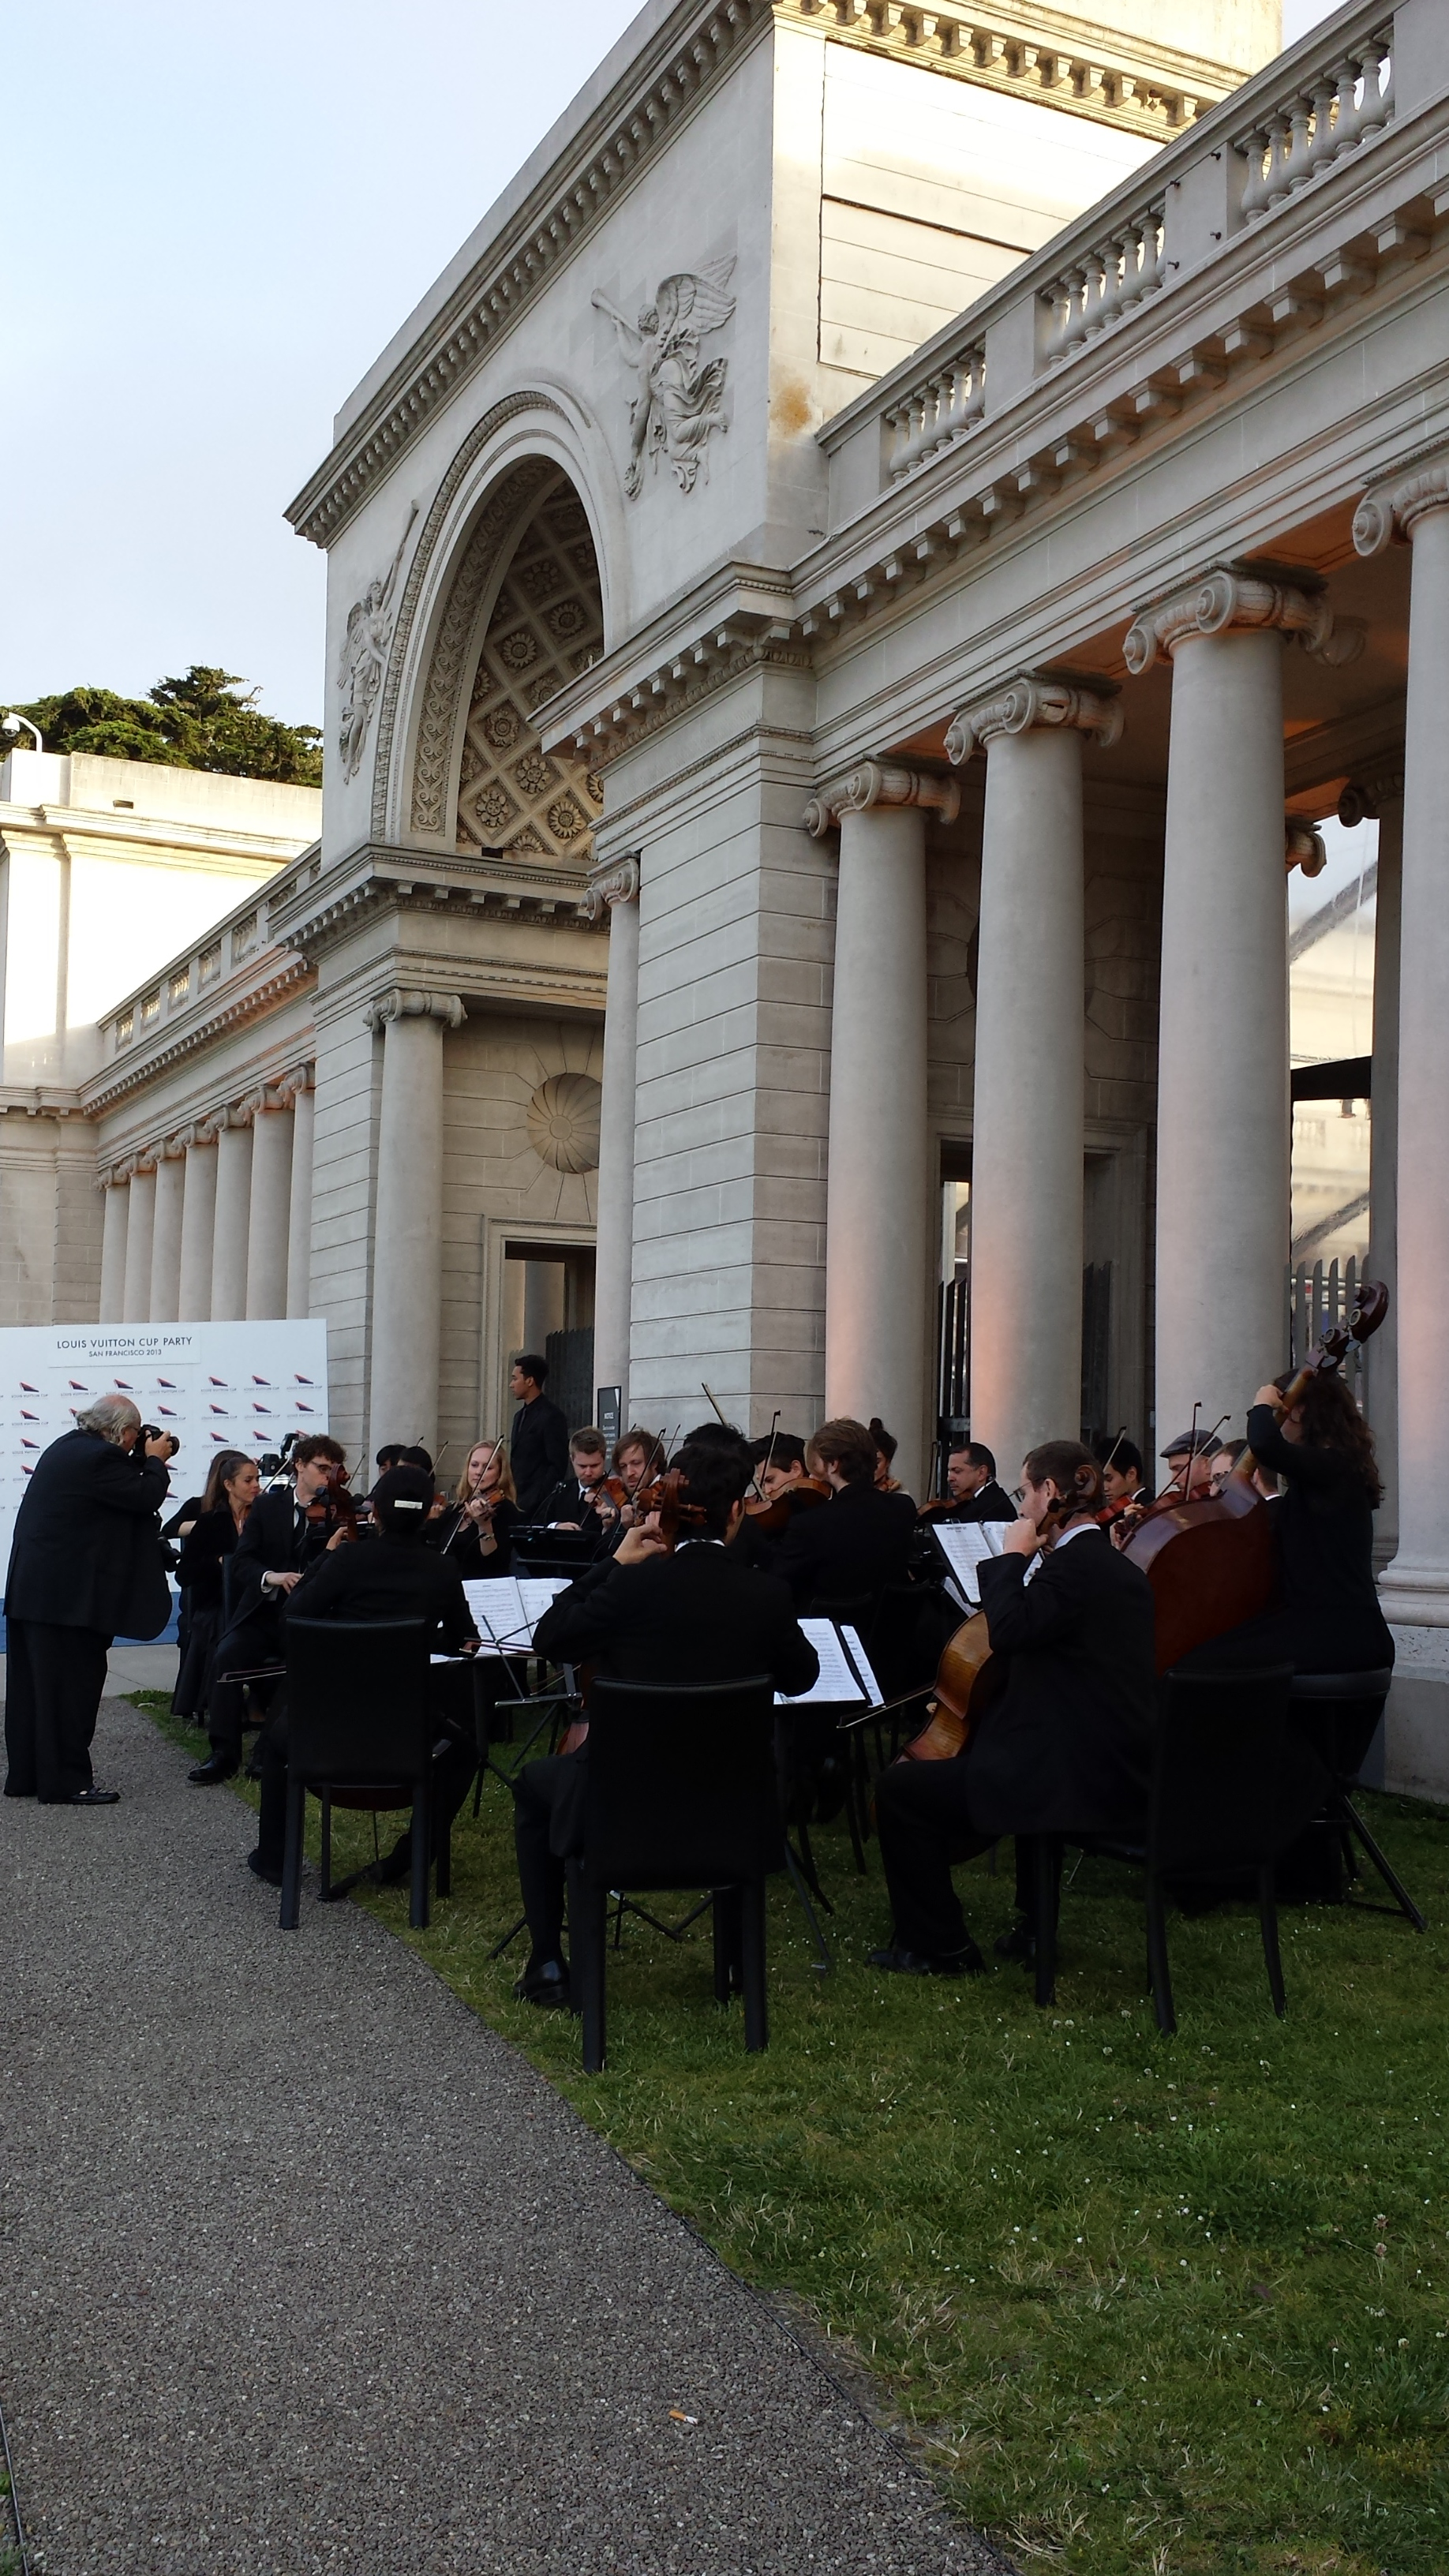 In July 2013, a 25-person Magik string orchestra serenades guests assembling at the opening of the  LOUIS VUITTON CUP  at the Legion of Honor.